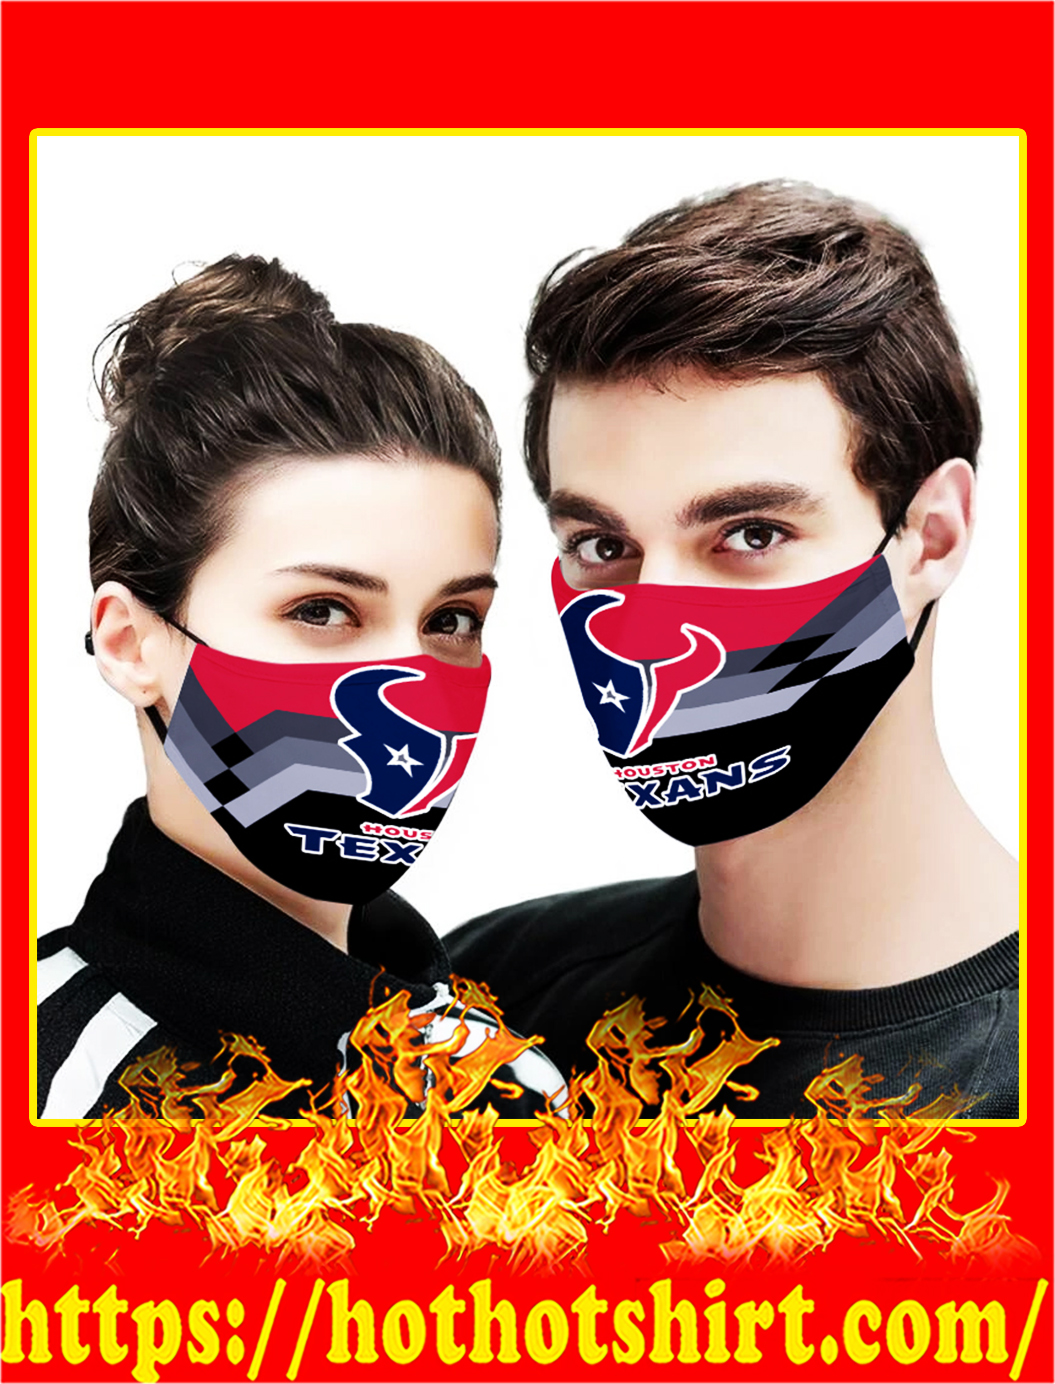 Houston texans face mask - pic 1Houston texans face mask - pic 1